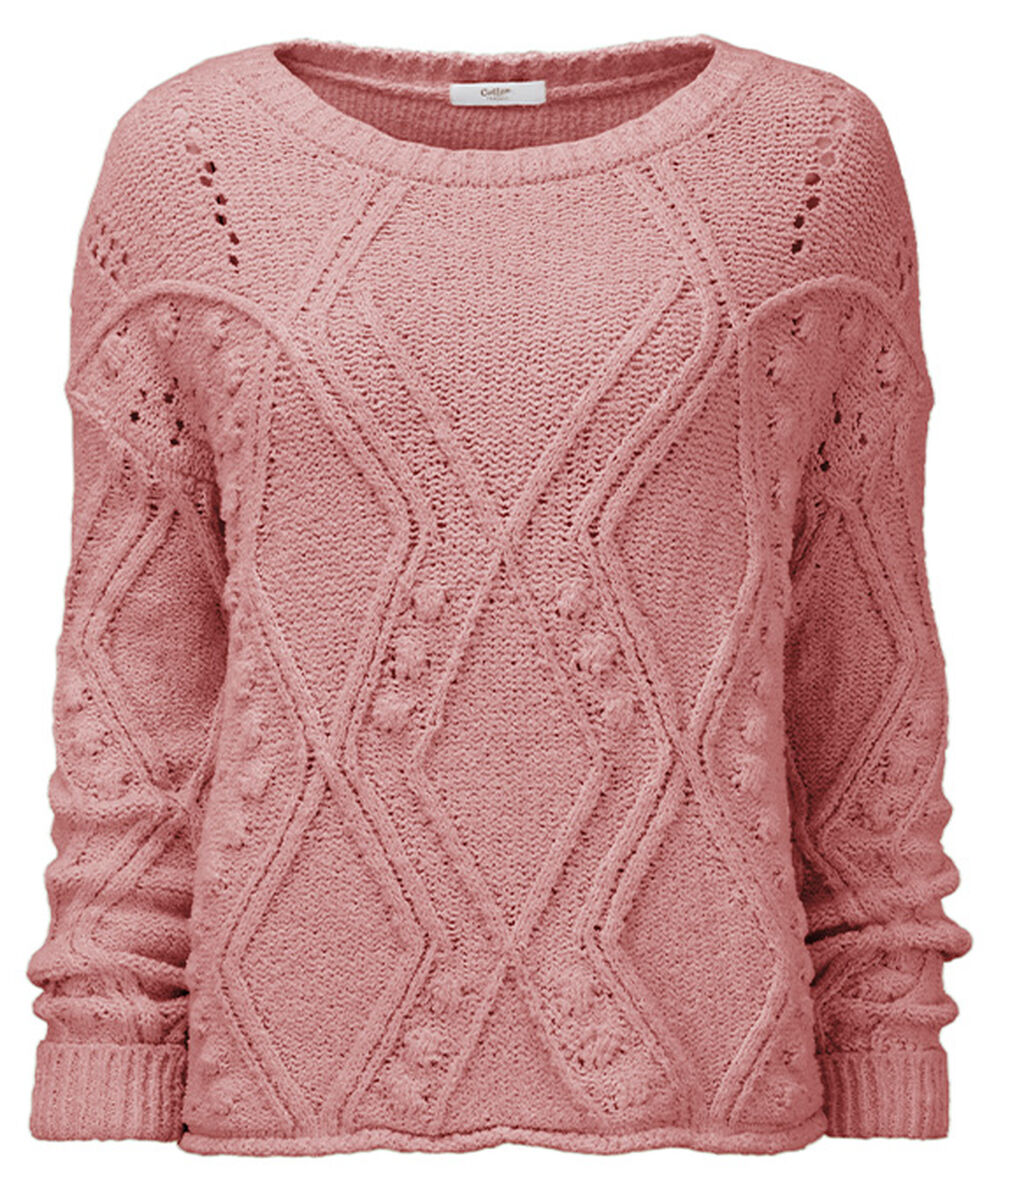 The Comfy Jumper | By Cotton Traders